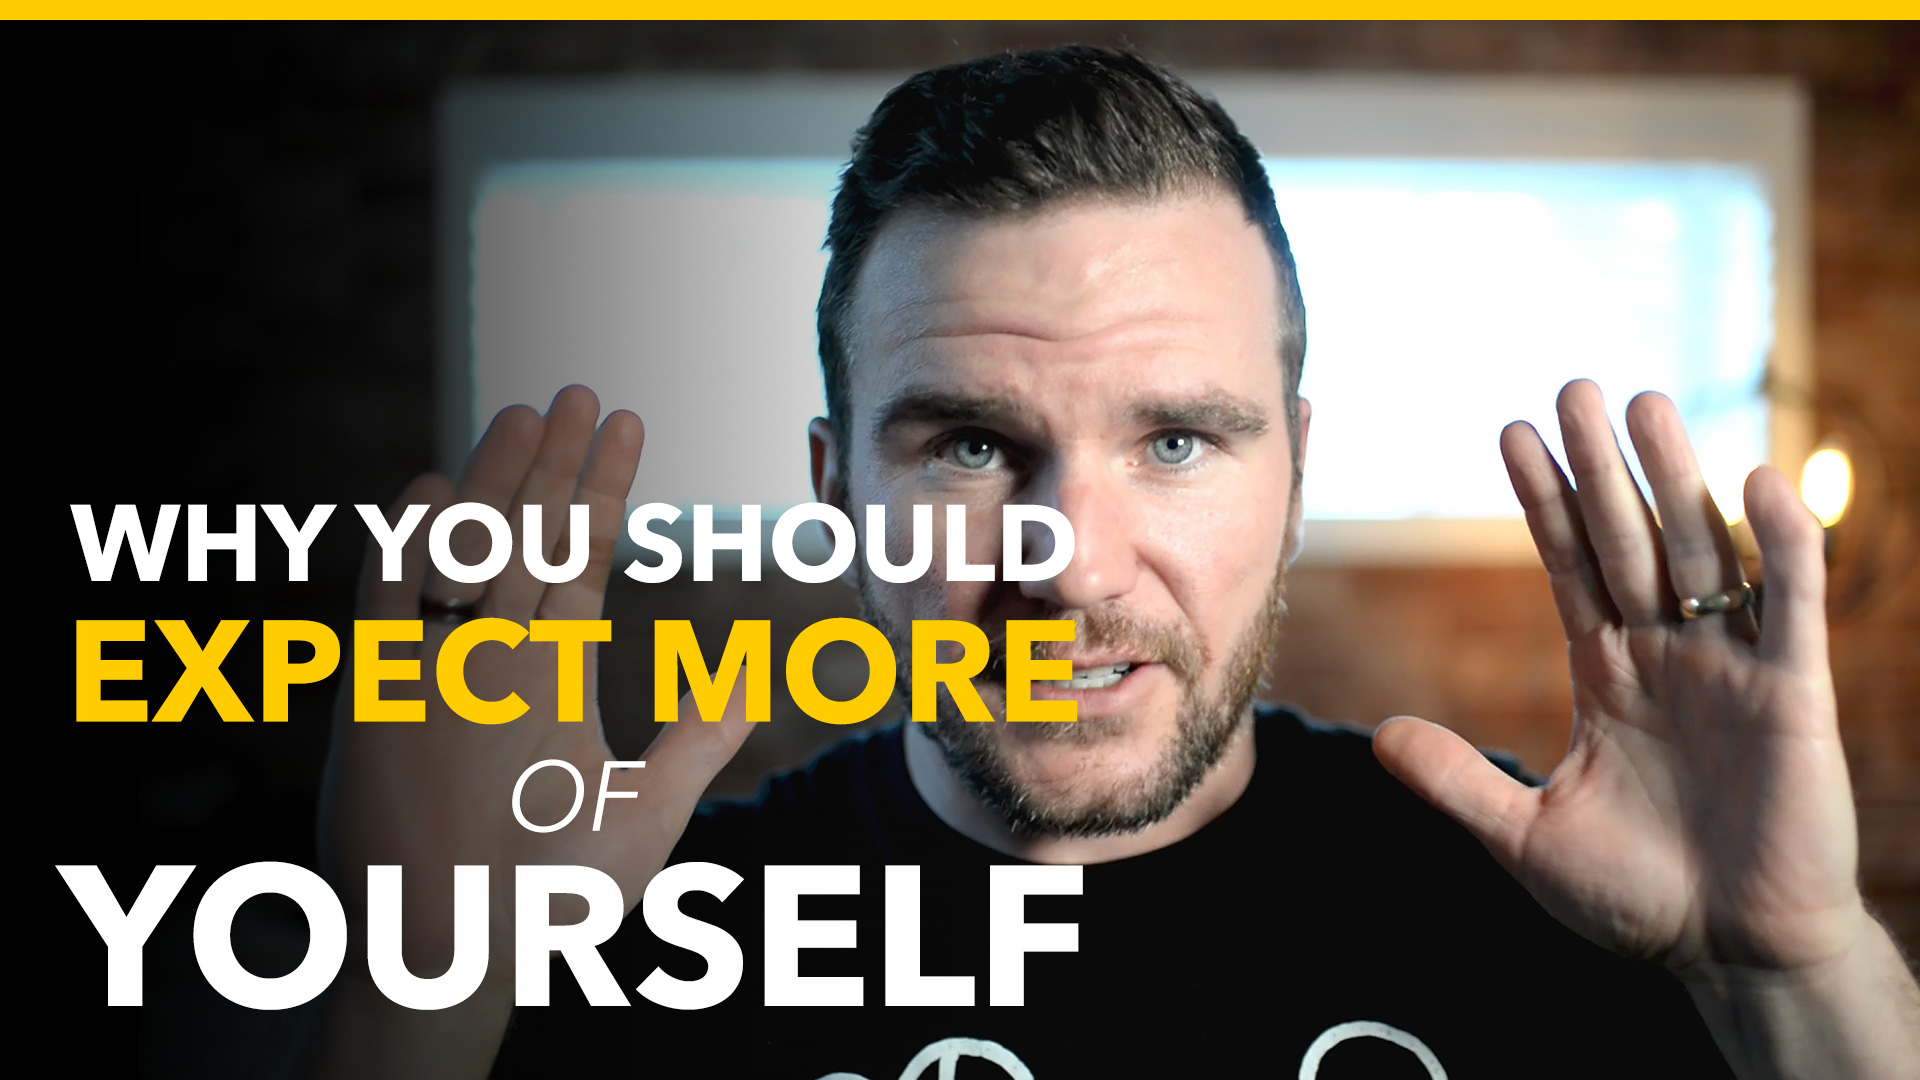 expect more of yourself - brad hussey